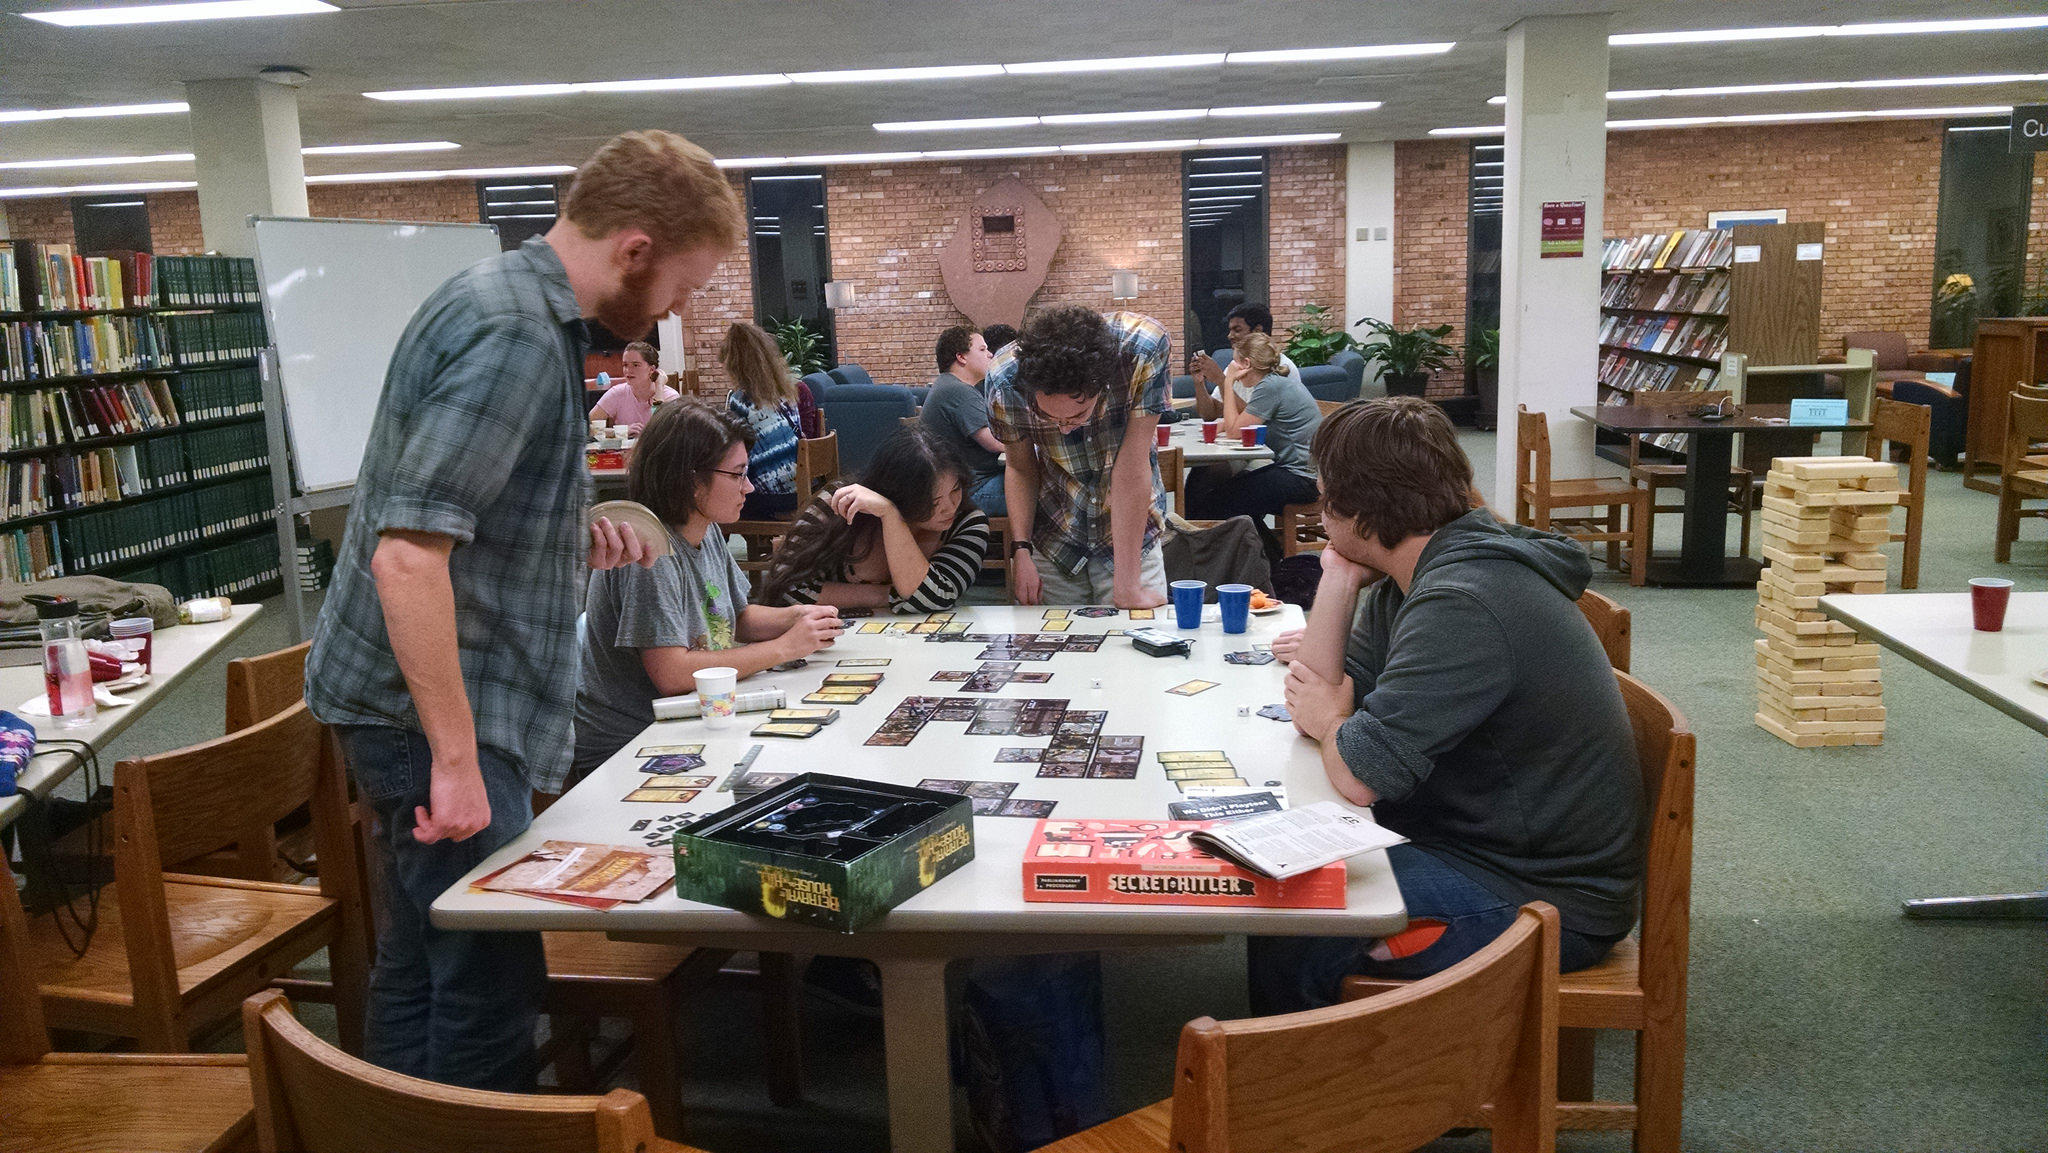 Students playing games at Game Night